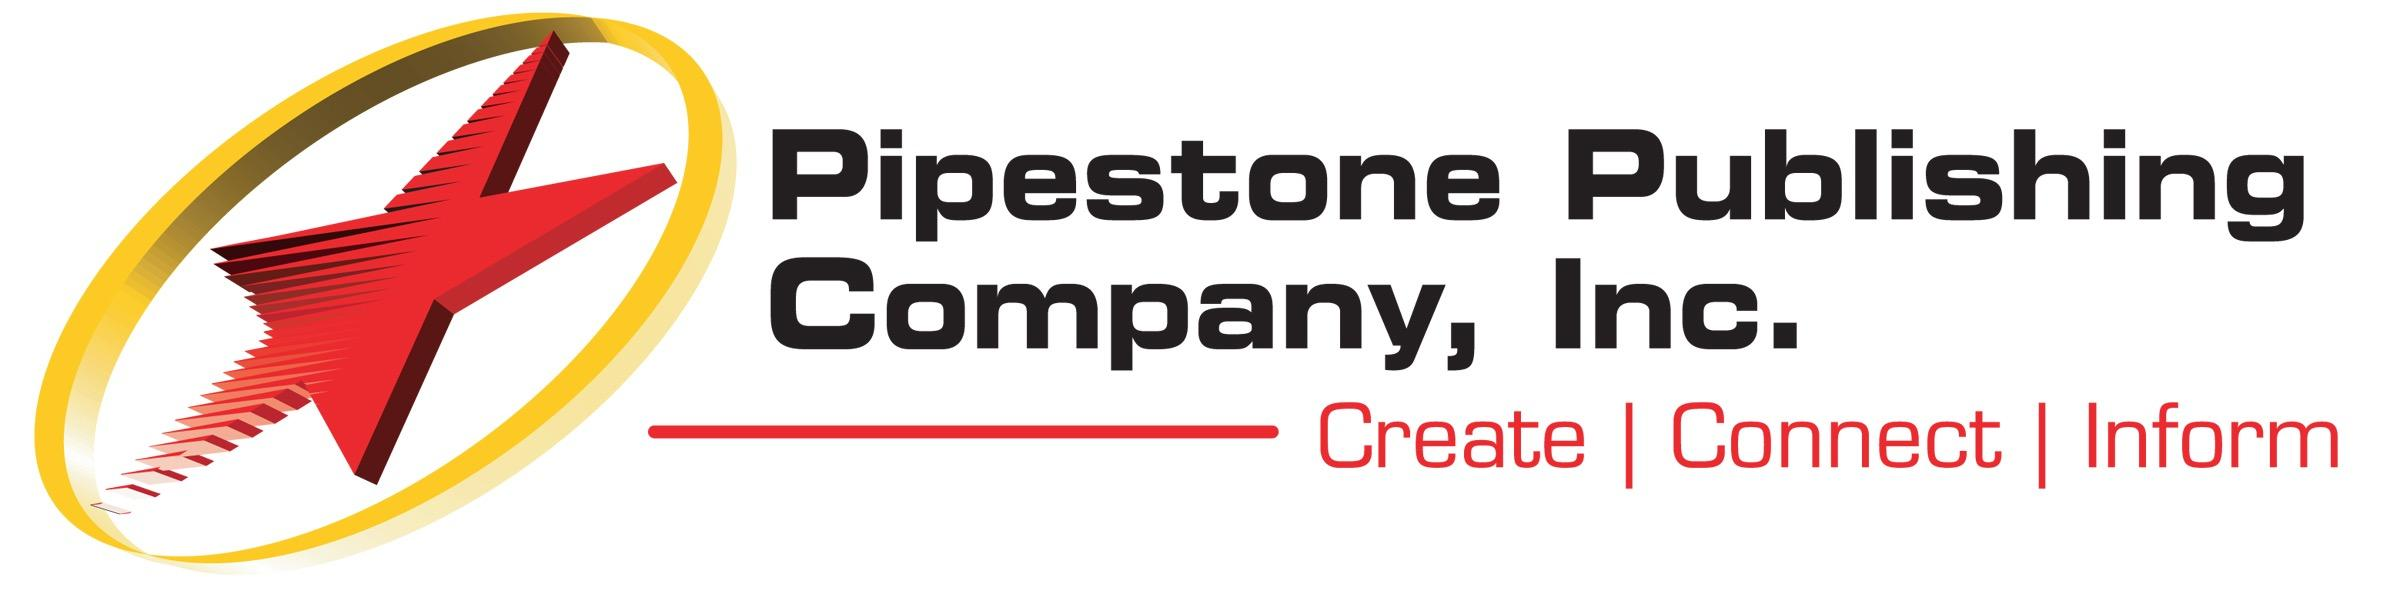 Pipestone Publishing Co., Inc.